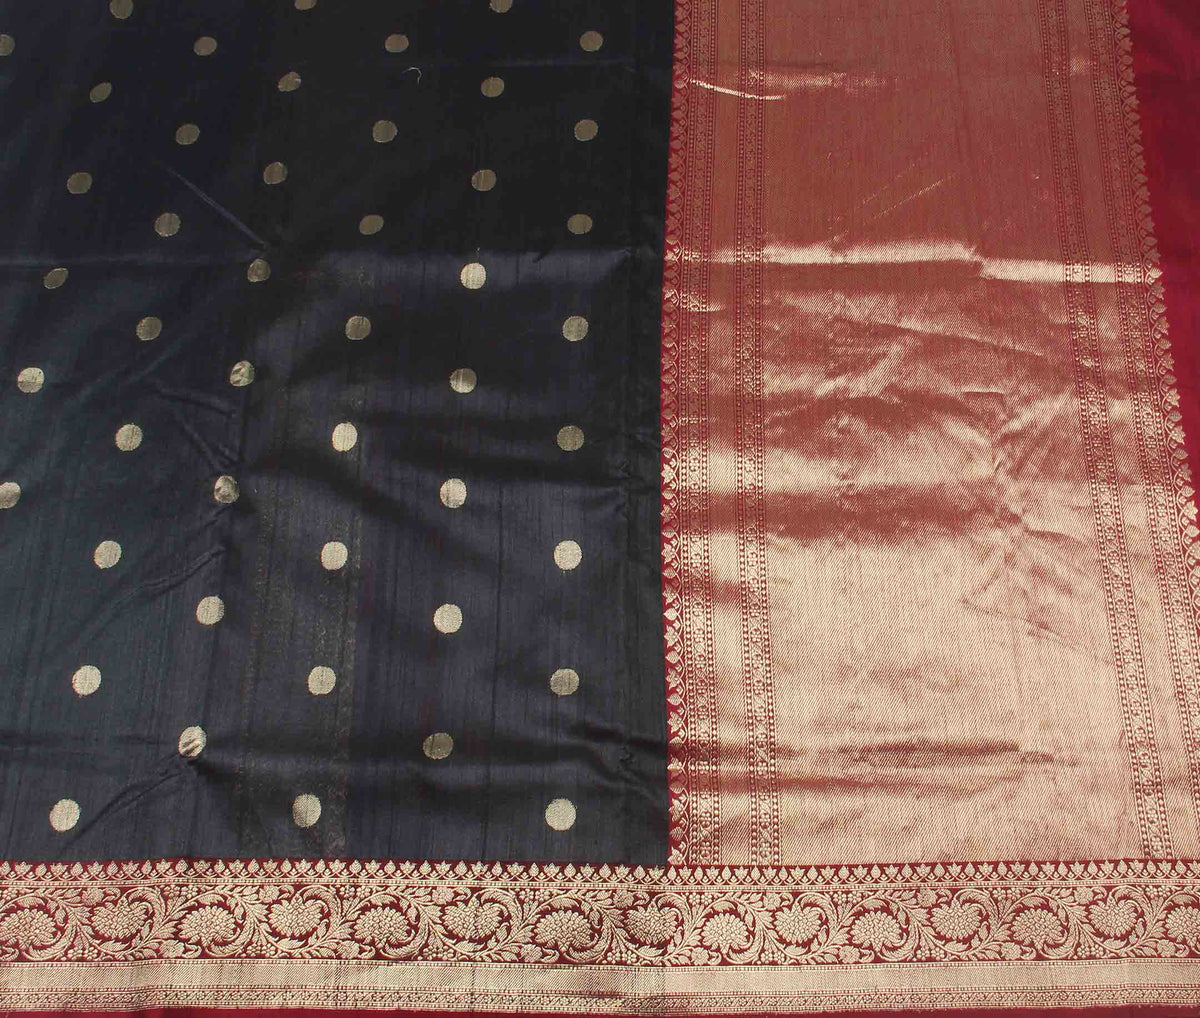 Black Tussar Silk Handwoven Banarasi saree with round shape motifs (2) flat